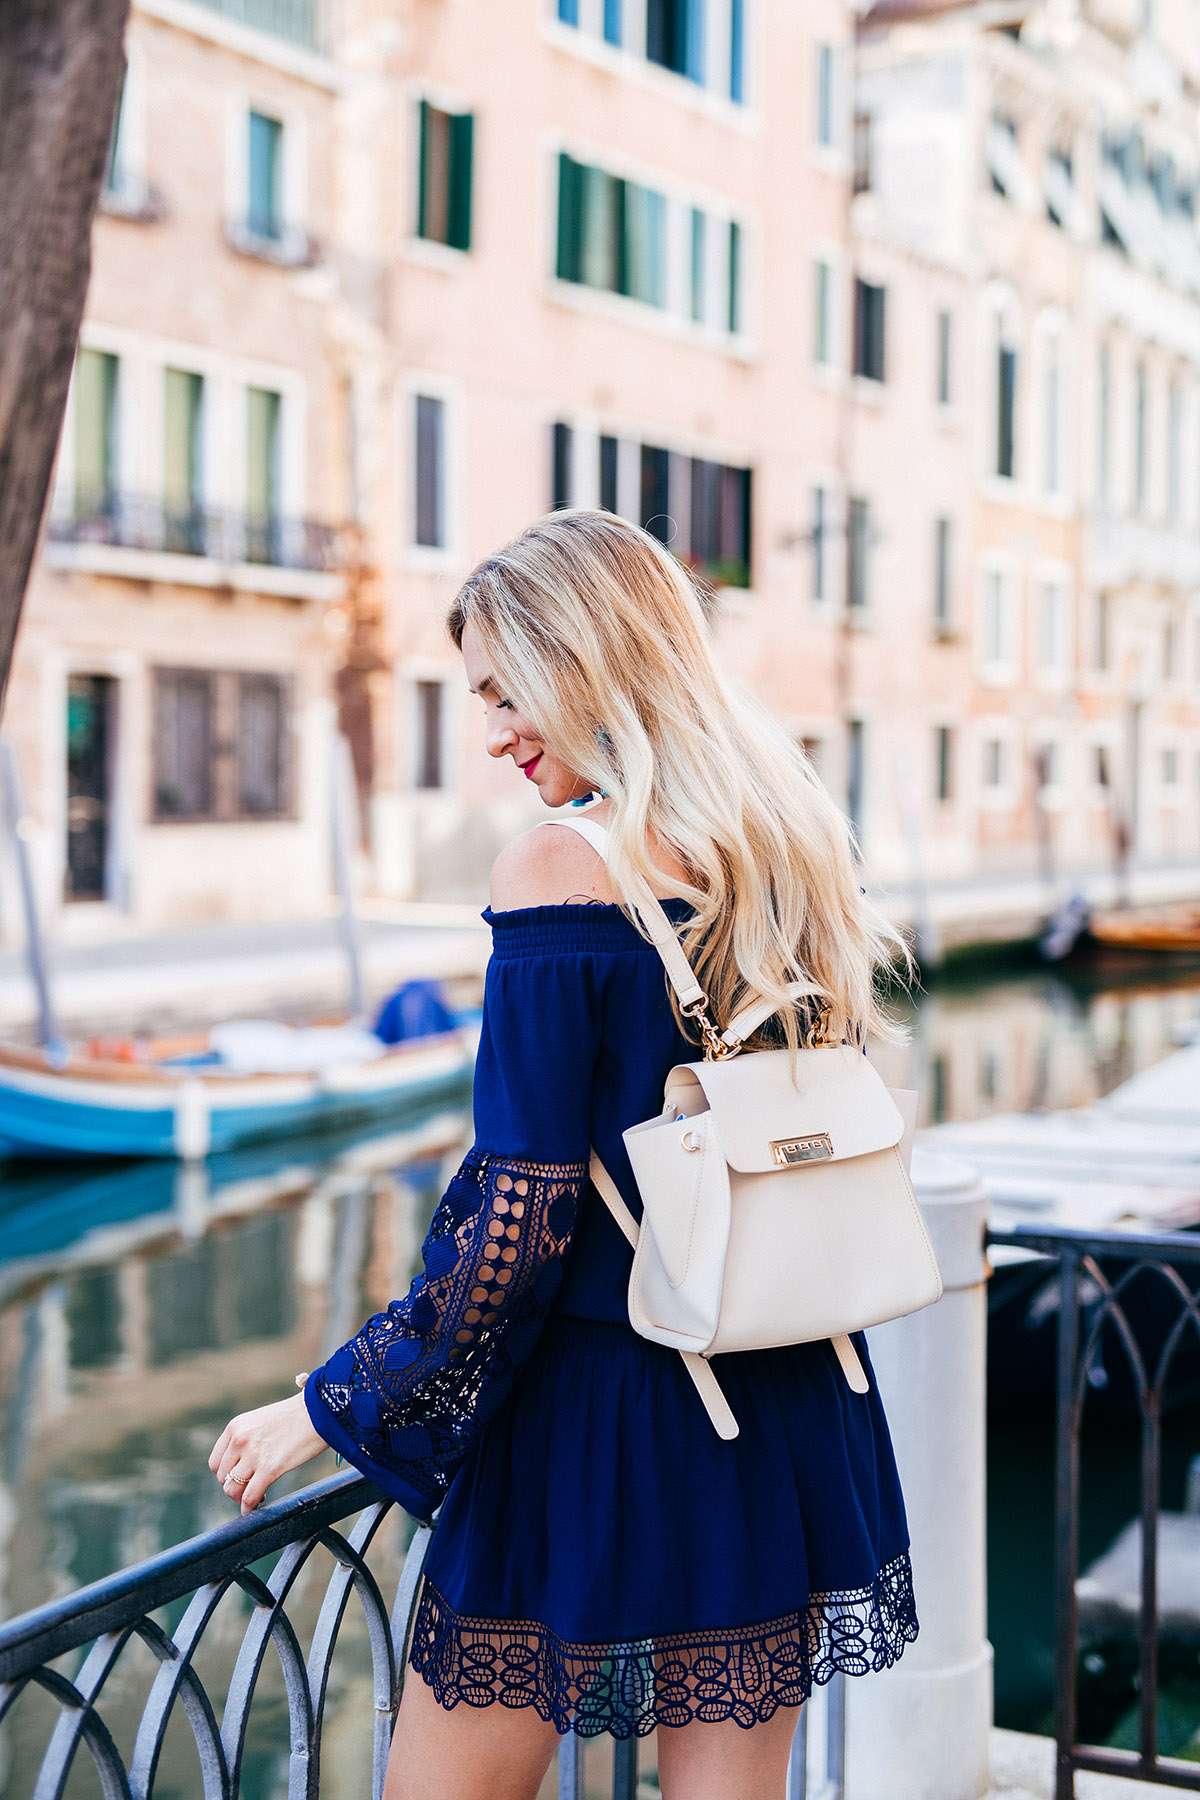 Convertible Travel Backpack | Best Travel Backpacks | 24 Hours in Venice